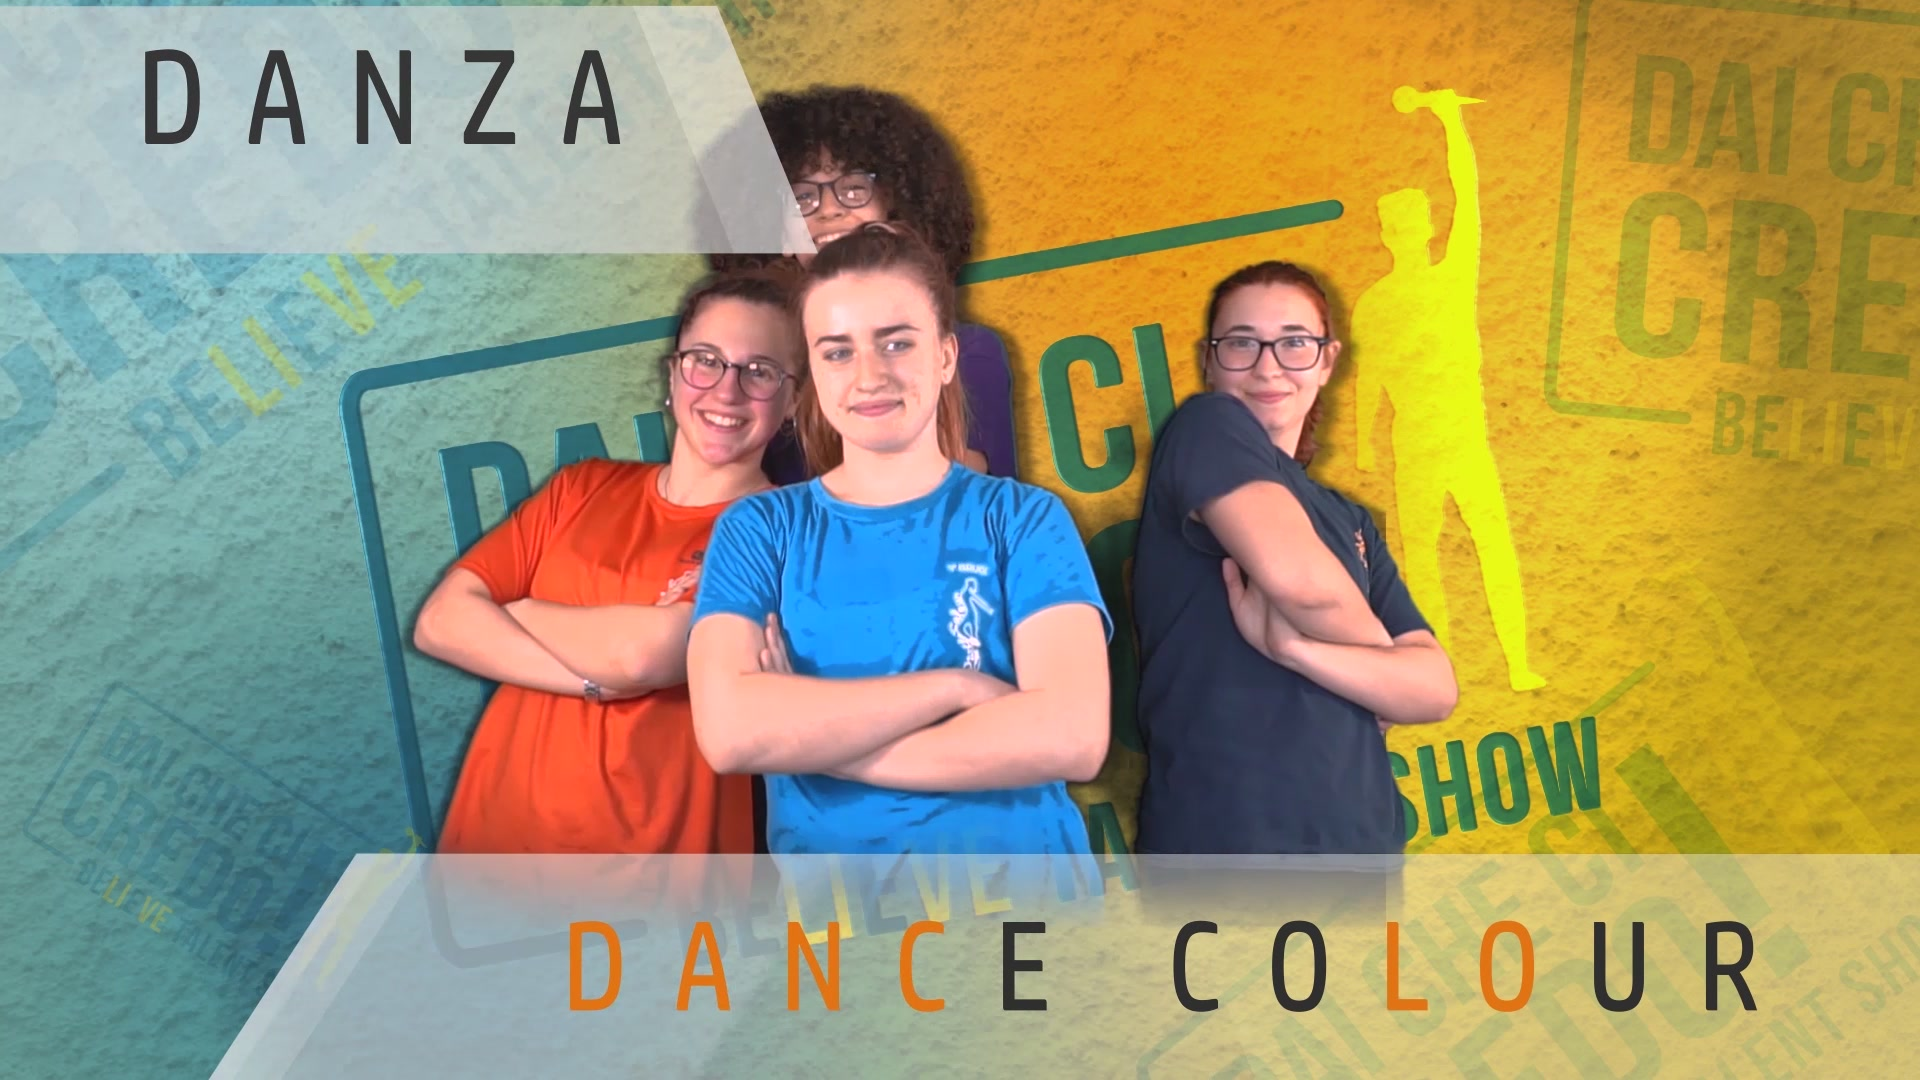 Dance Colour